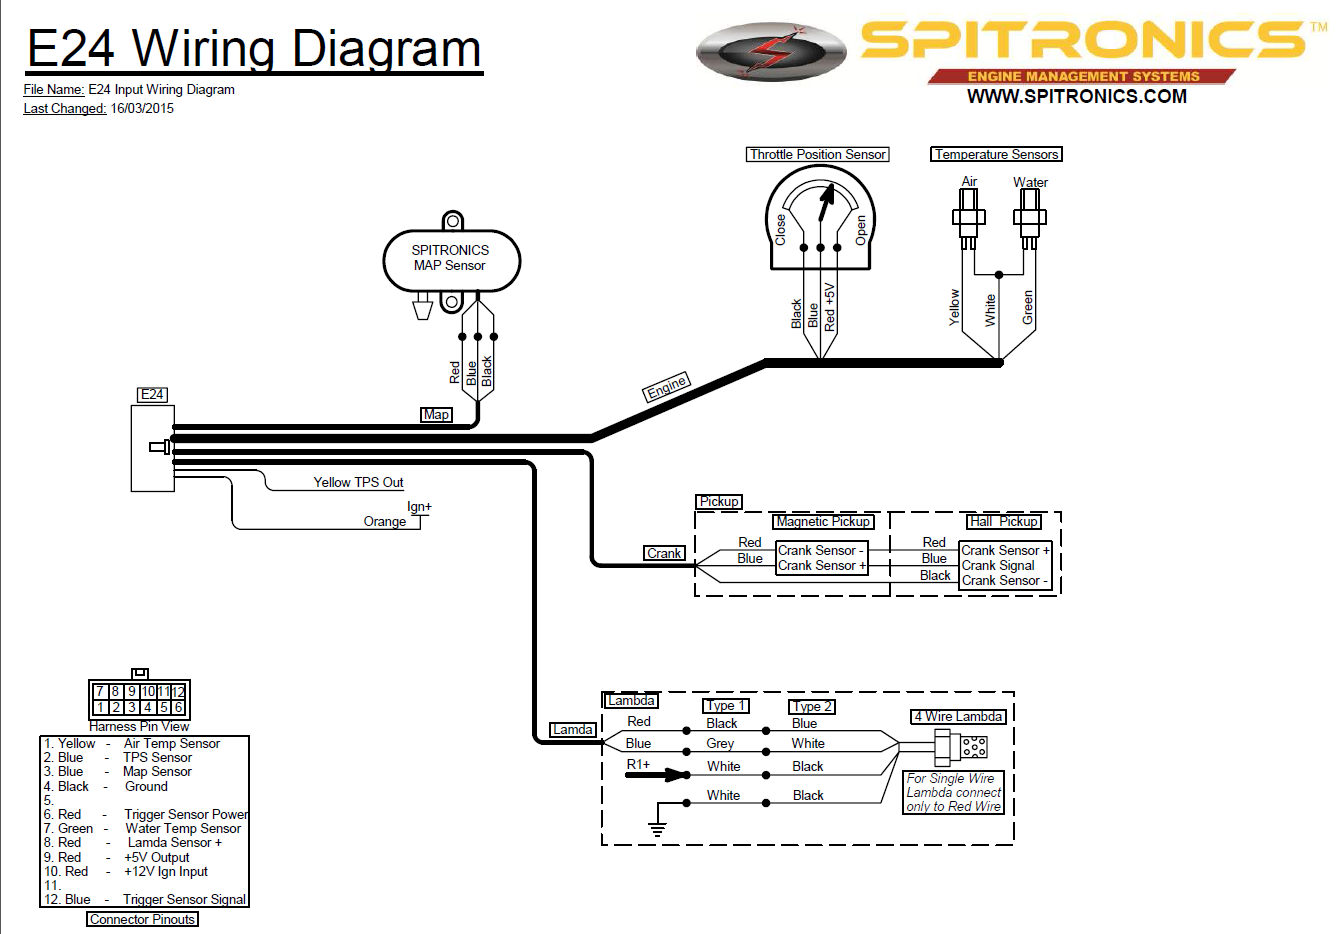 Spitronics Saturn Wiring Diagram Improve Schematics Engine Management Auto Electrical Rh 6weeks Co Uk